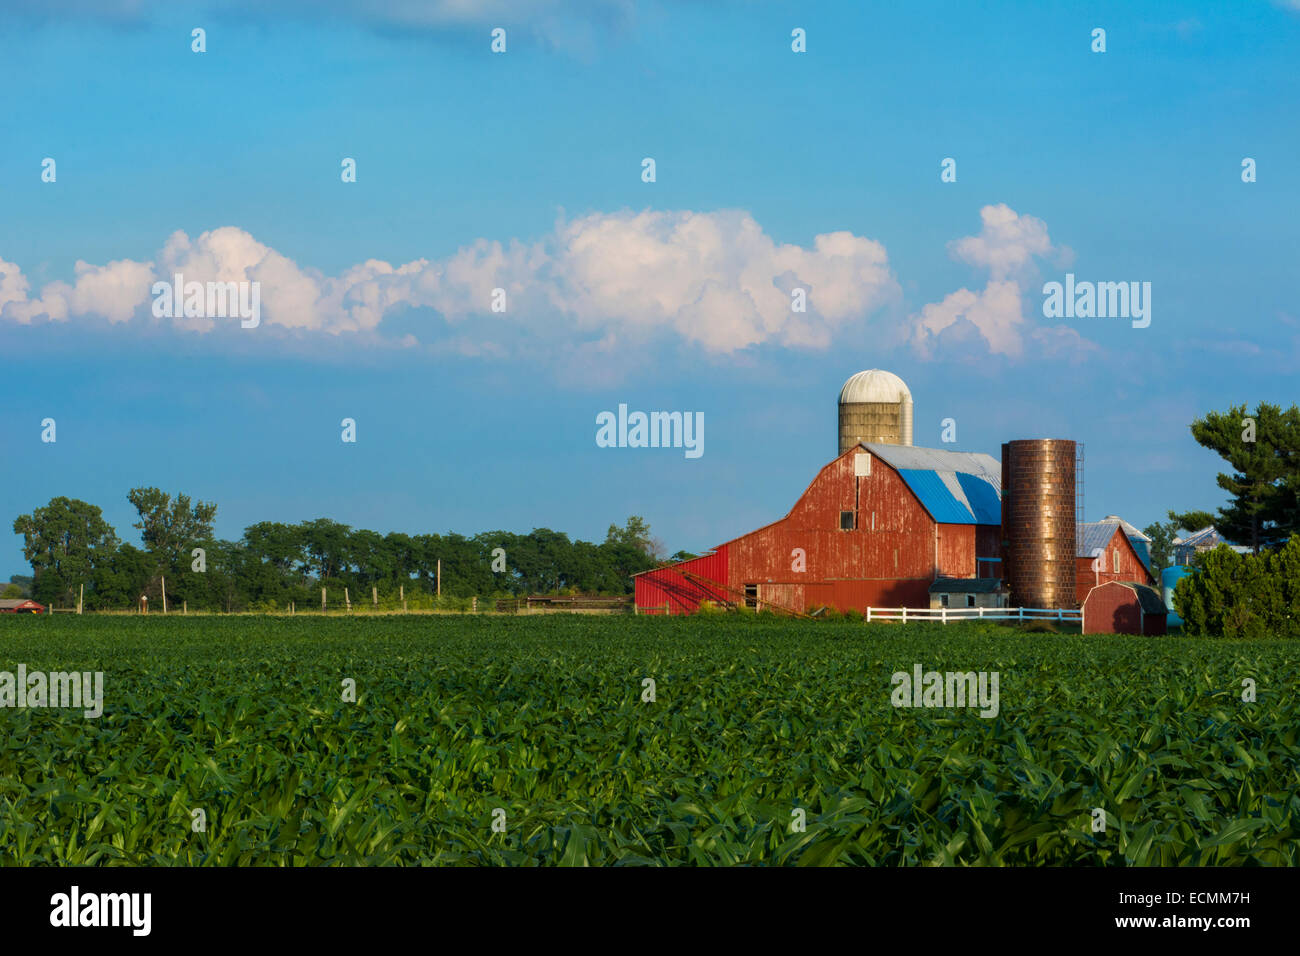 Milford Center Ohio farm with red barn and corn owned by Jim Watkins and Midwest farming near Columbus - Stock Image